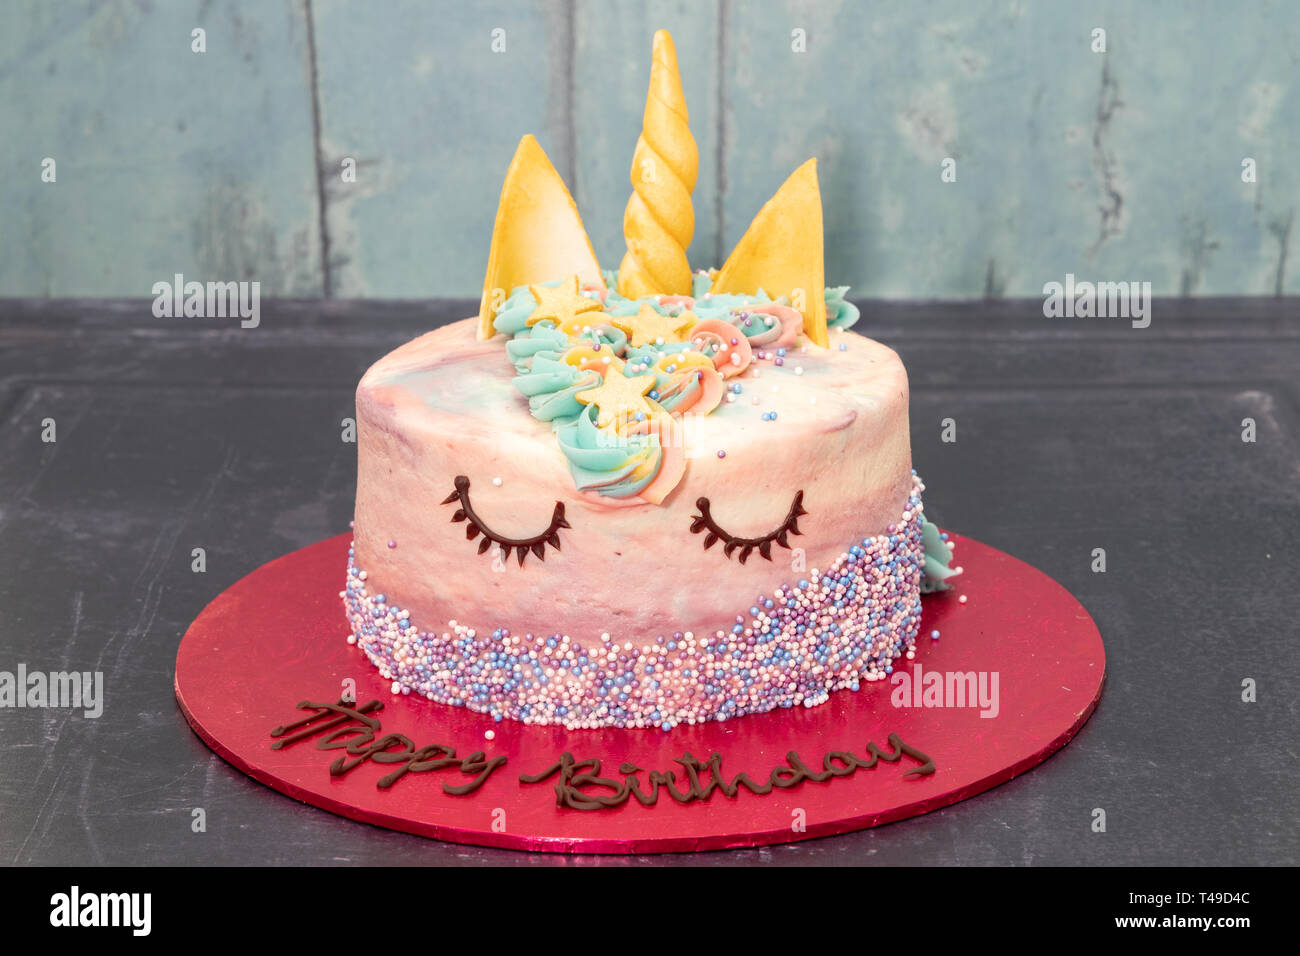 Remarkable Childrens Party Unicorn Birthday Cake Stock Photo 243611660 Alamy Personalised Birthday Cards Cominlily Jamesorg